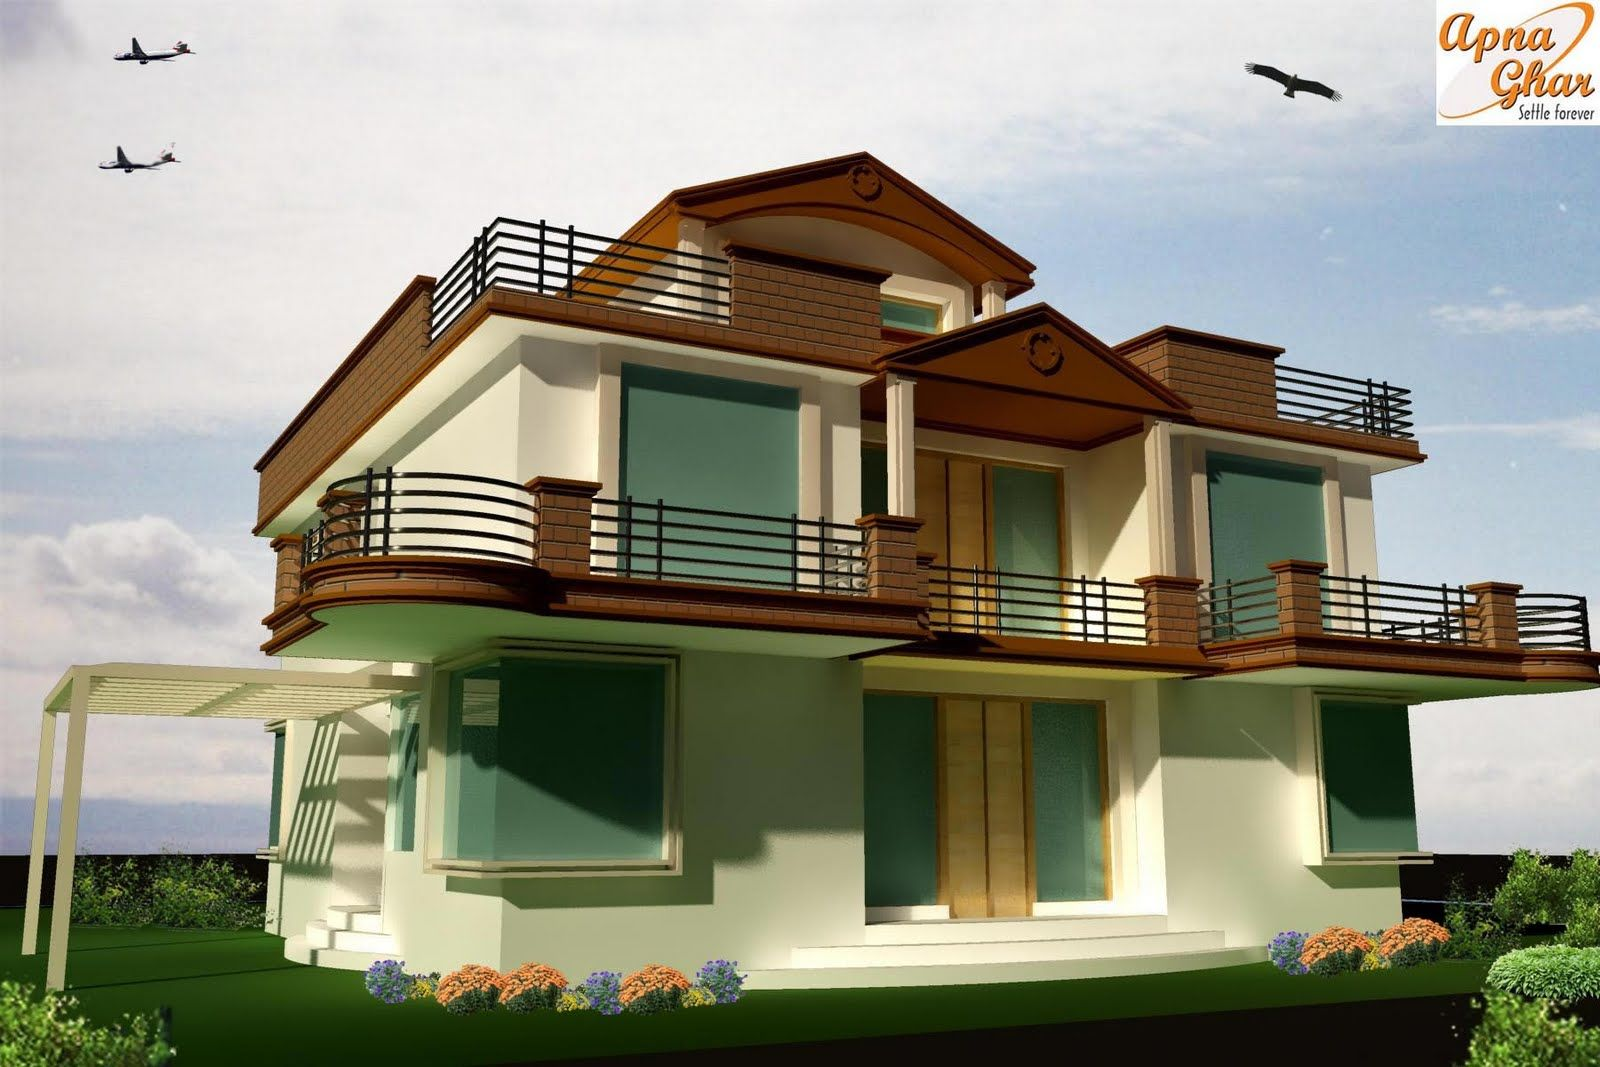 Architectural designs modern architectural house plans for Contemporary architecture houses